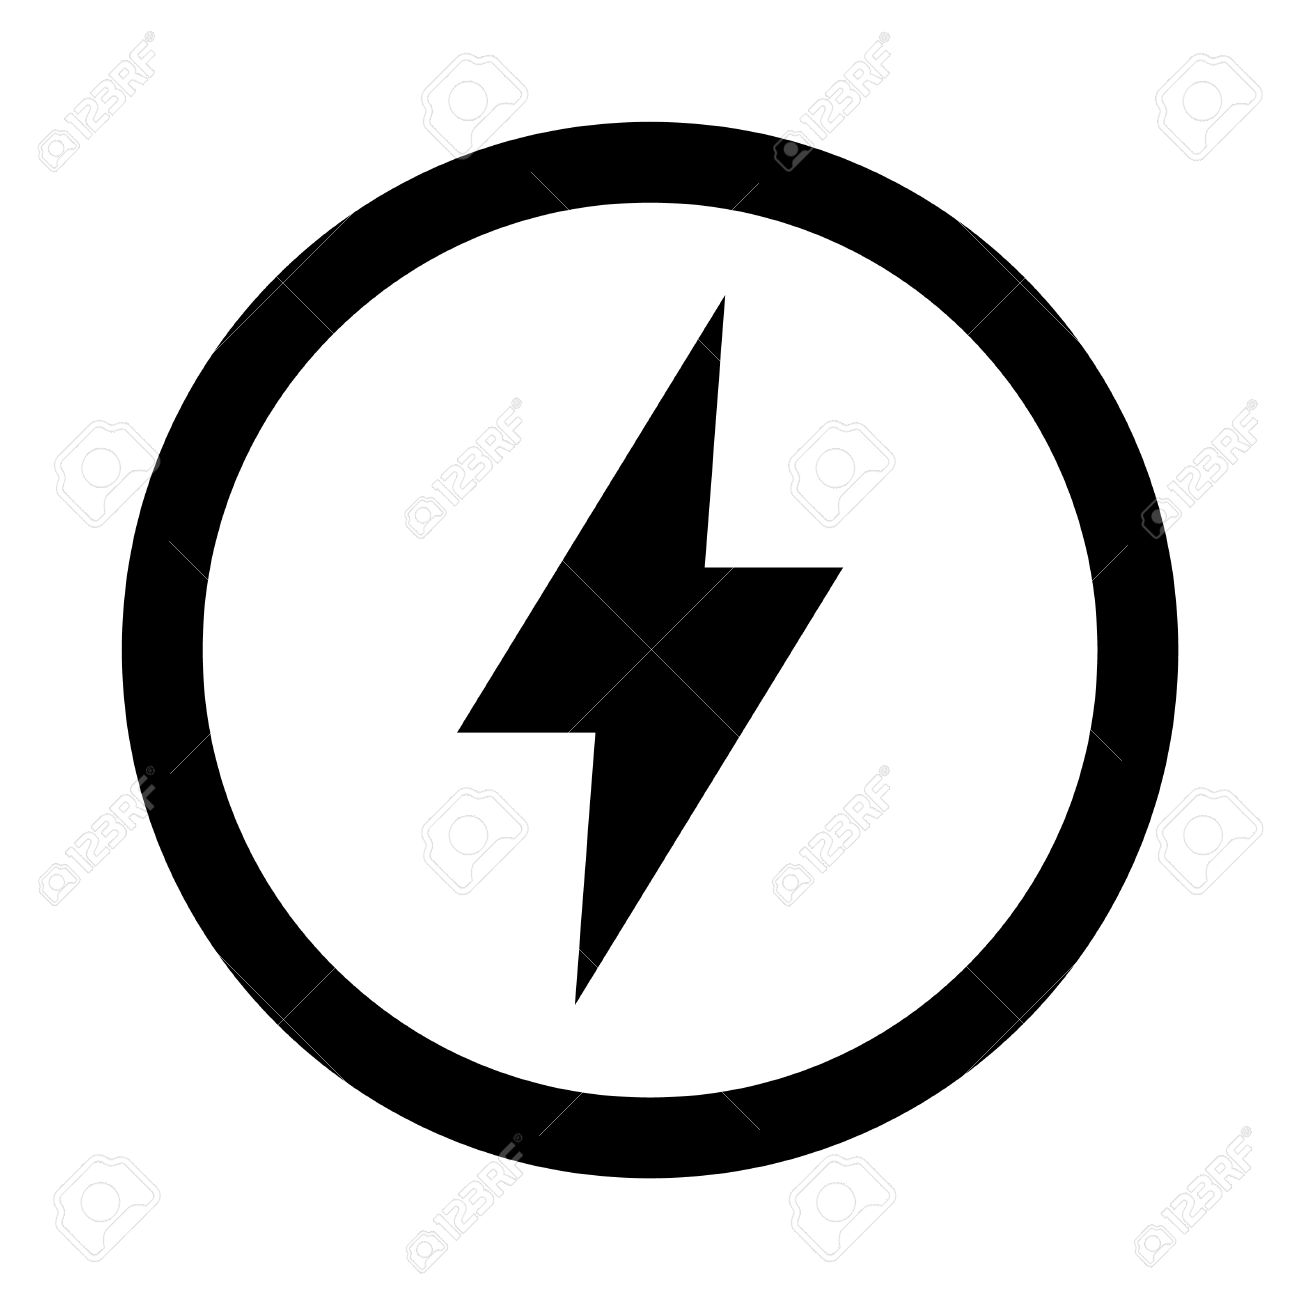 Lightning Bolt Vector Icon Royalty Free Cliparts, Vectors, And ... for Vector Lighting Bolt  183qdu